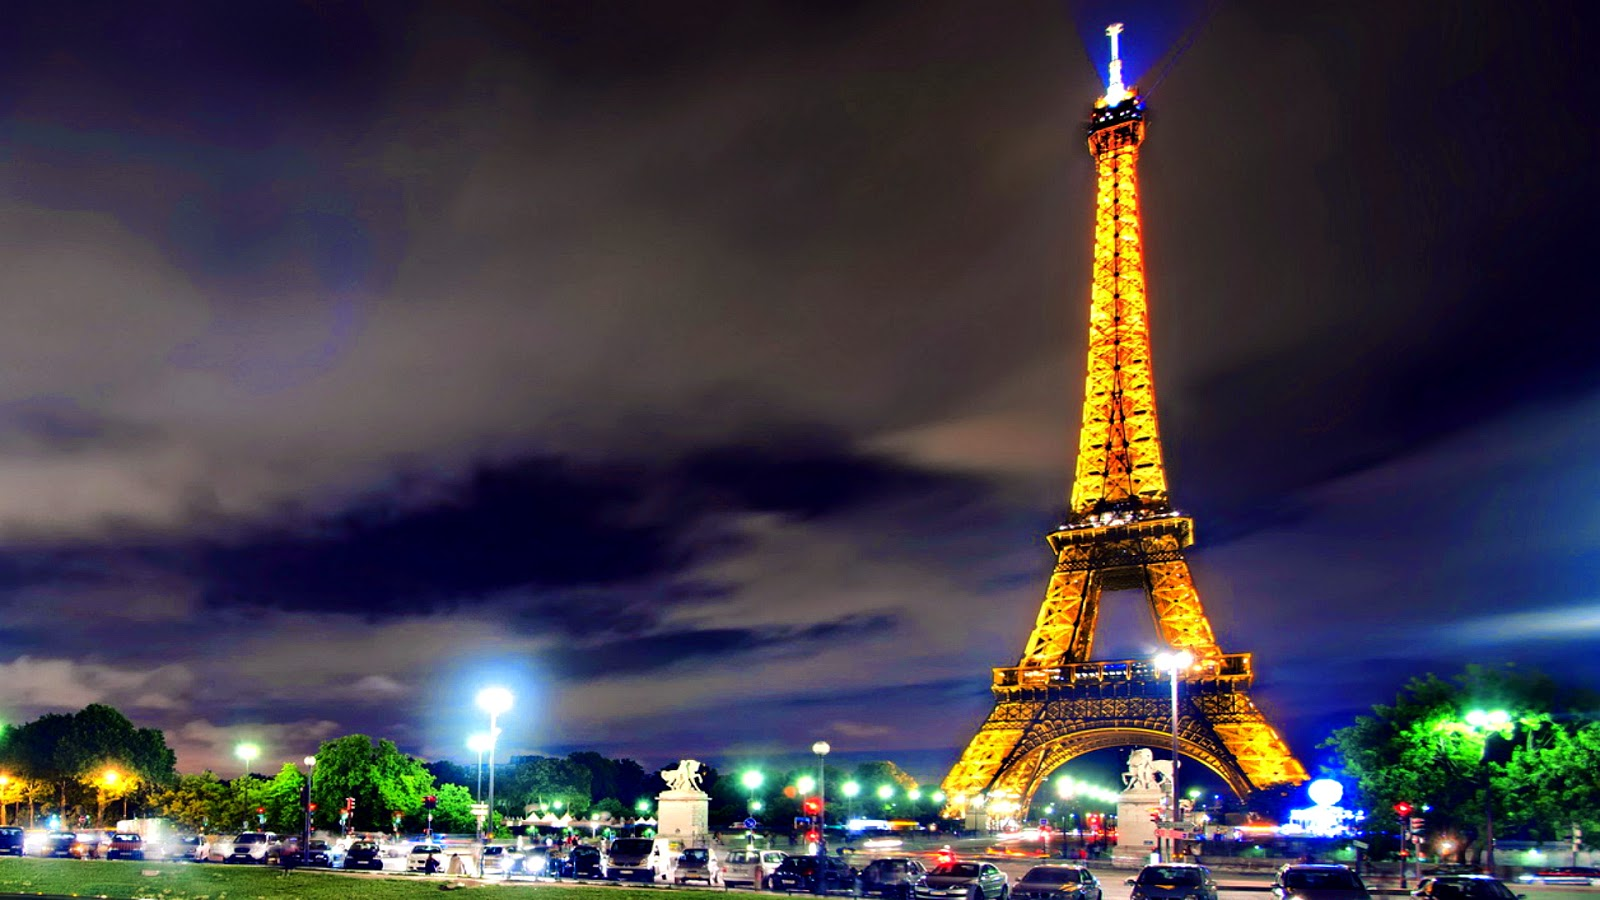 Eiffel Tower Nice Wallpapers | Eiffel Tower Latest Hd ...